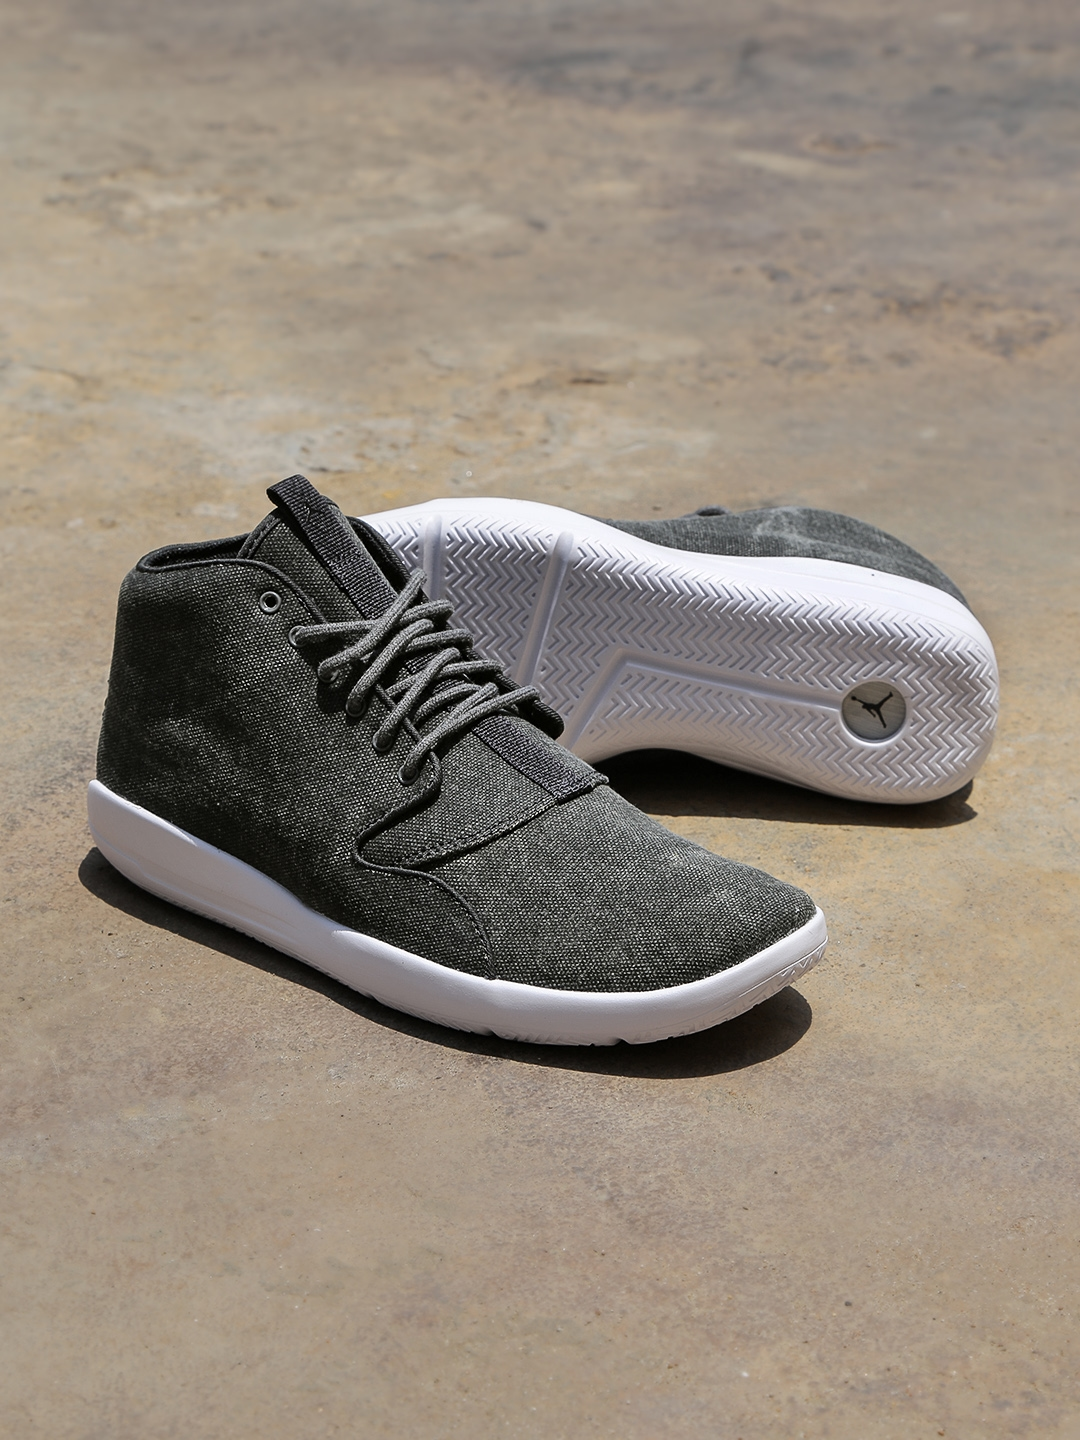 a98e6bd630e9 Buy Nike Men Charcoal Grey Jordan Eclipse Chukka Mid Top Sneakers ...